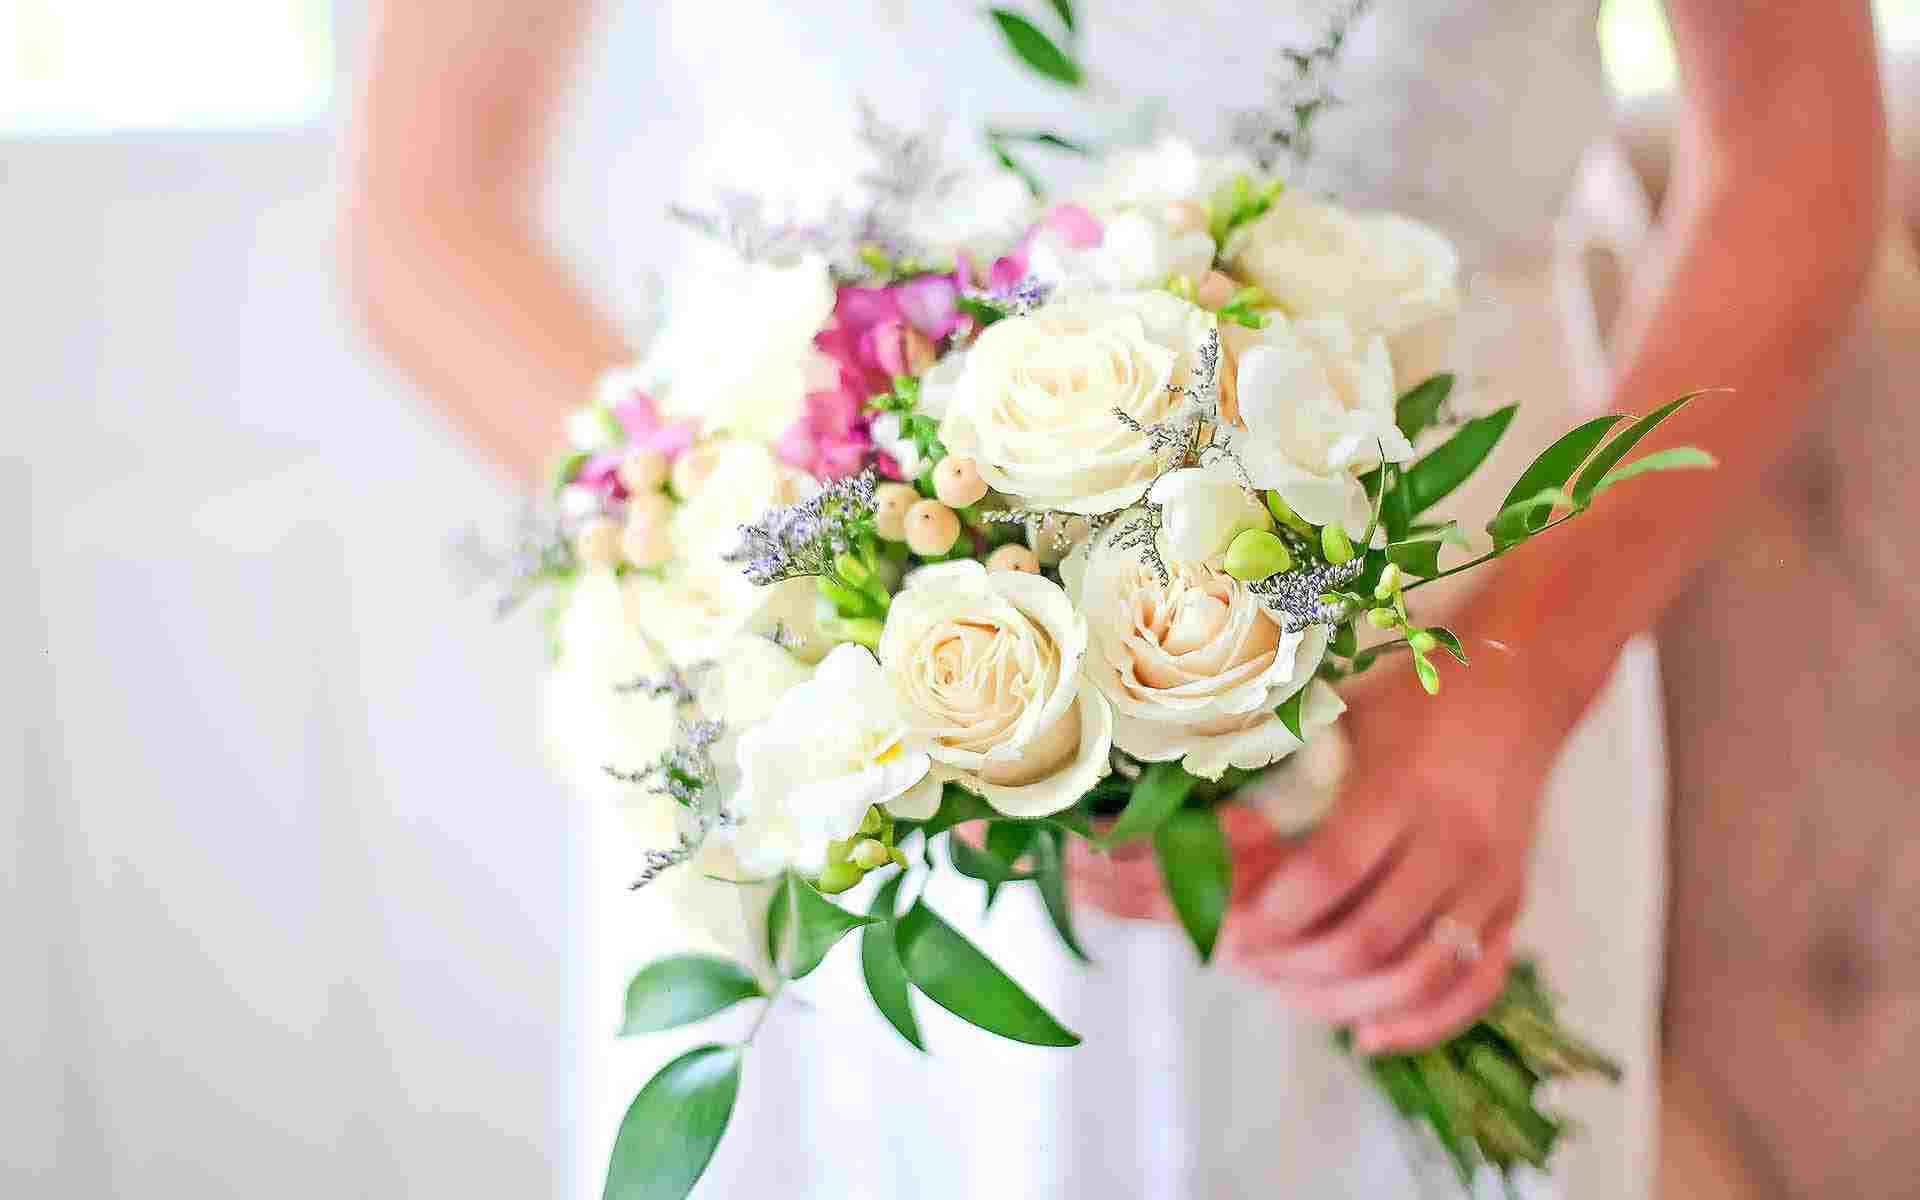 Beautiful-Wedding-Bouquet-To-Get-Inspired-For-Your-Own-Big-Day